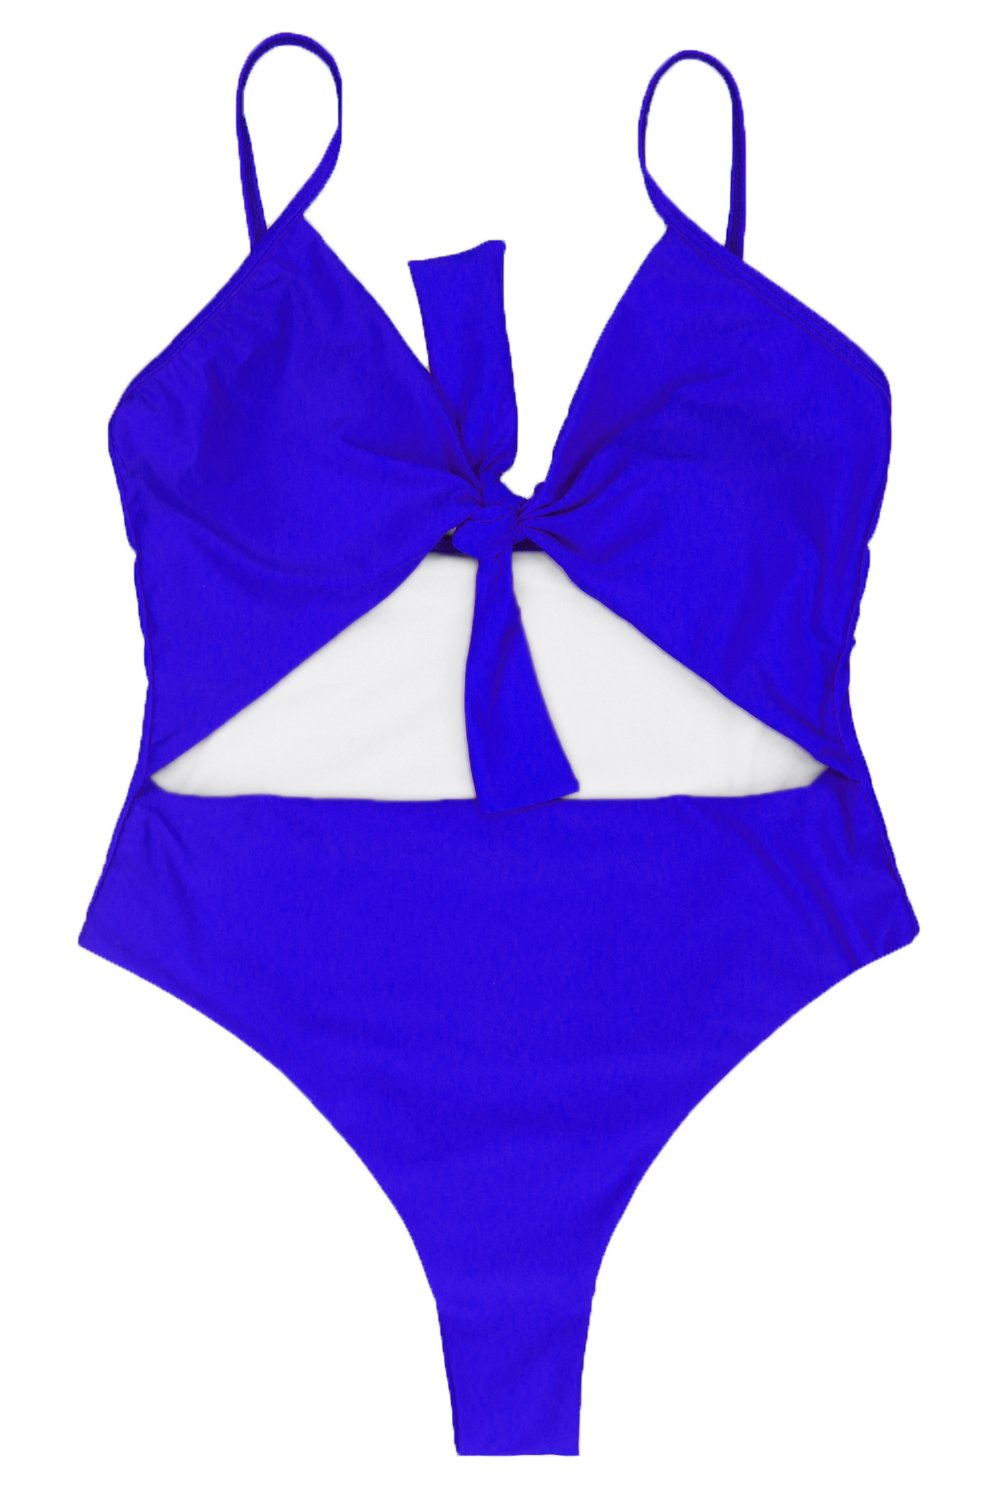 LEISUP Womens Plus Size V Neck Self Tie Knot HIgh Waisted One Piece Swimsuit XL by LEISUP (Image #4)